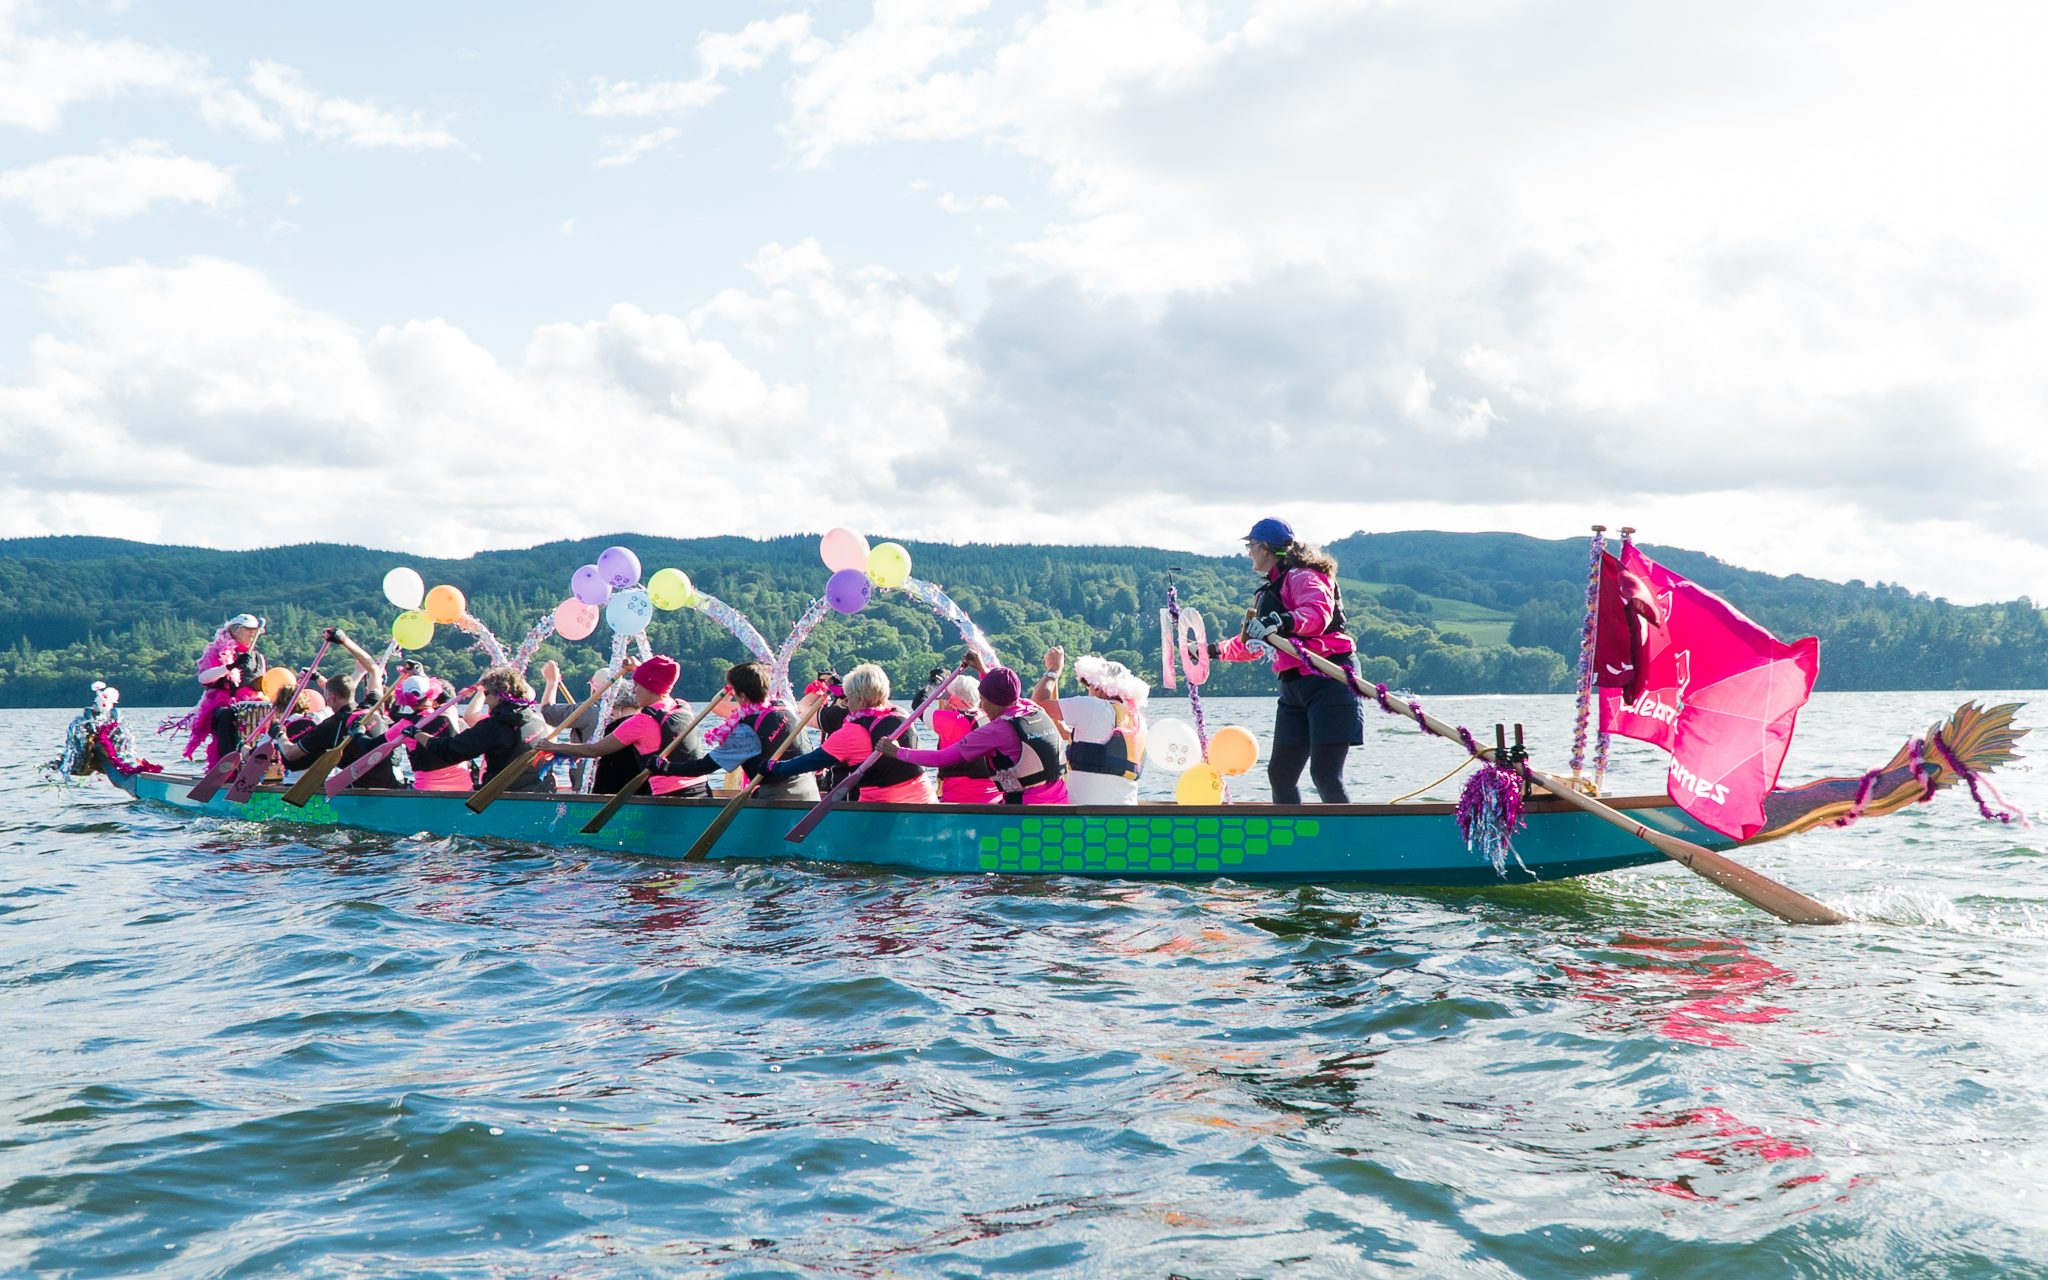 2017 and another windy paddle to Bowness to join the best dressed boat parade.